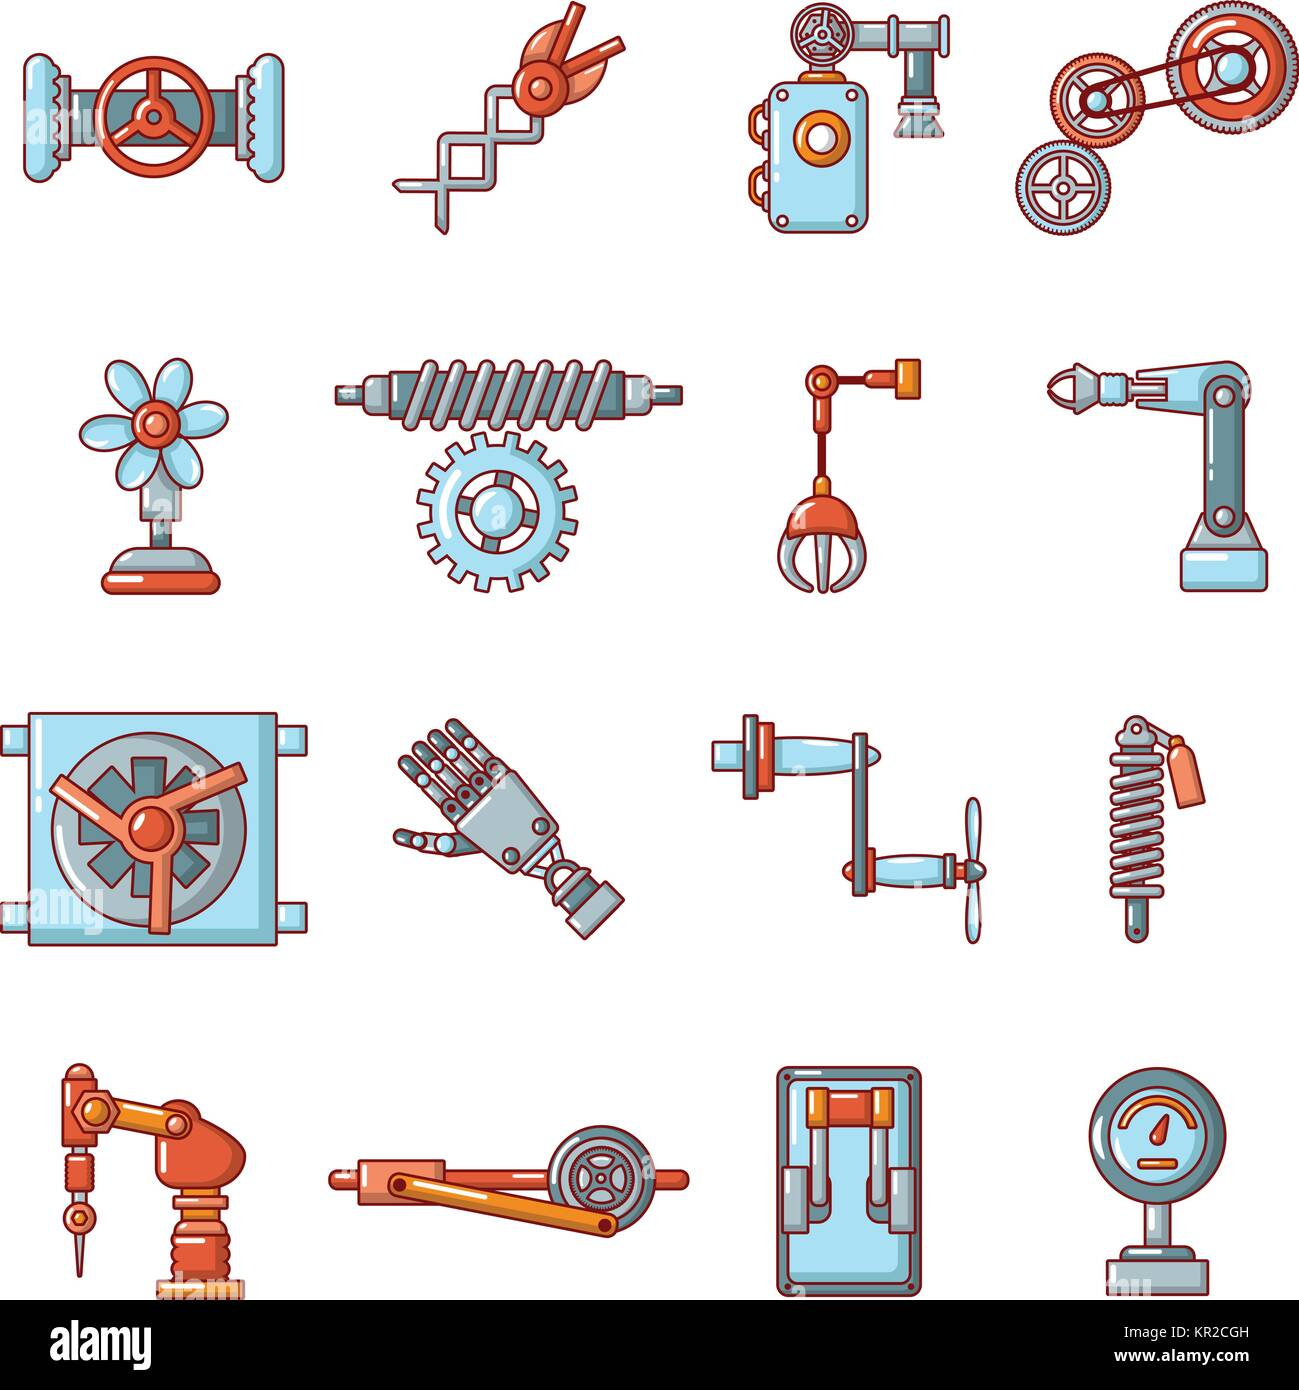 Technical mechanisms icons set, cartoon style - Stock Image